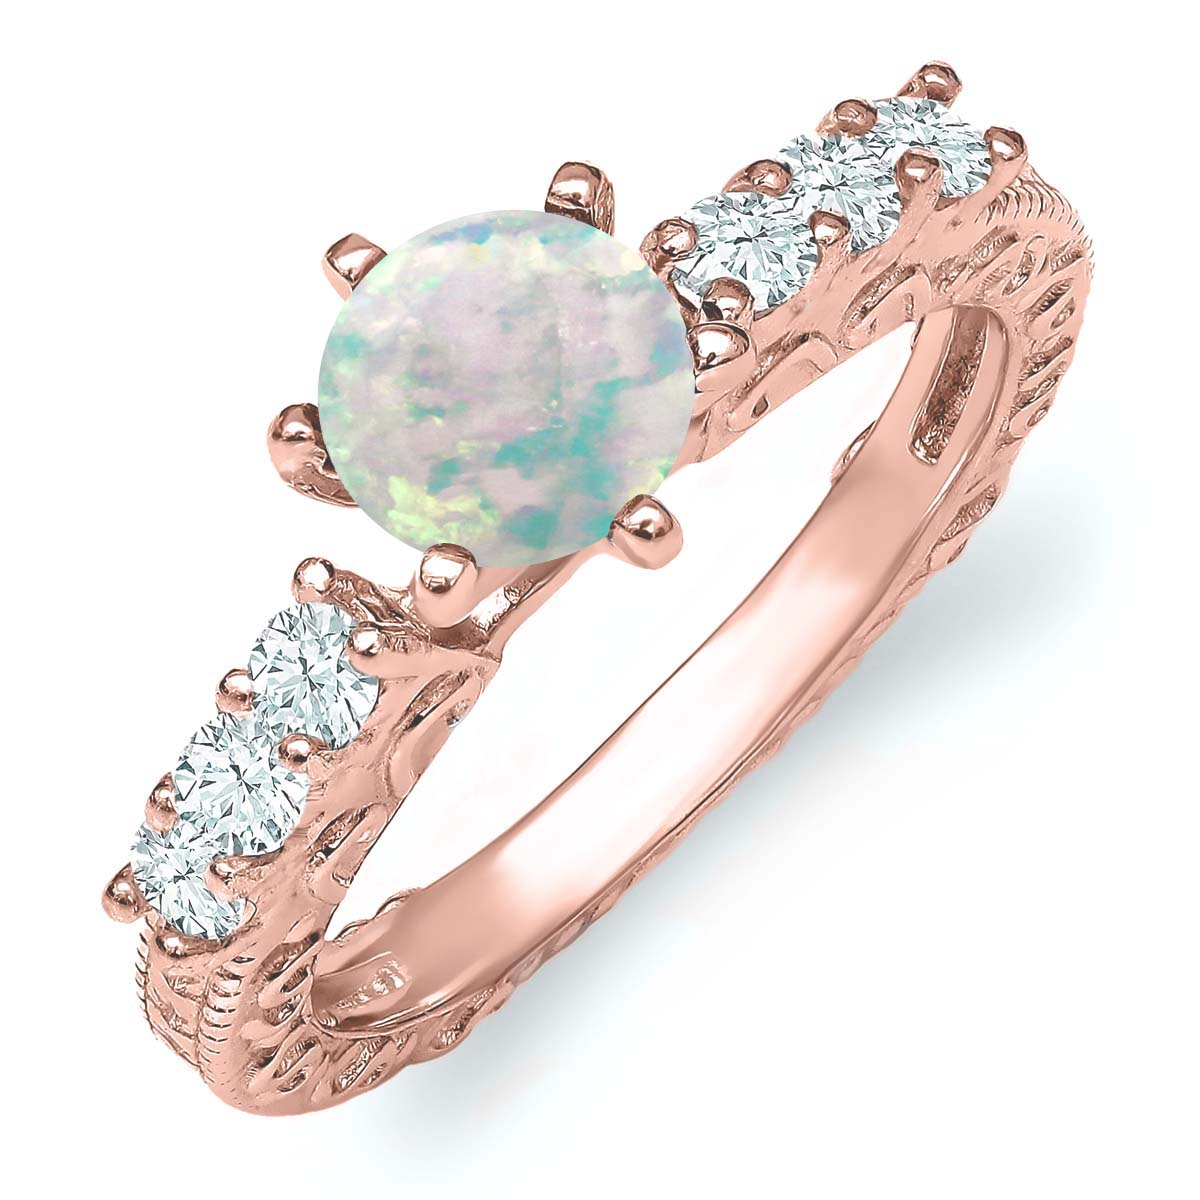 0.95 Ct Round Cabochon White Simulated Opal 18K Rose Gold Plated Silver Ring by